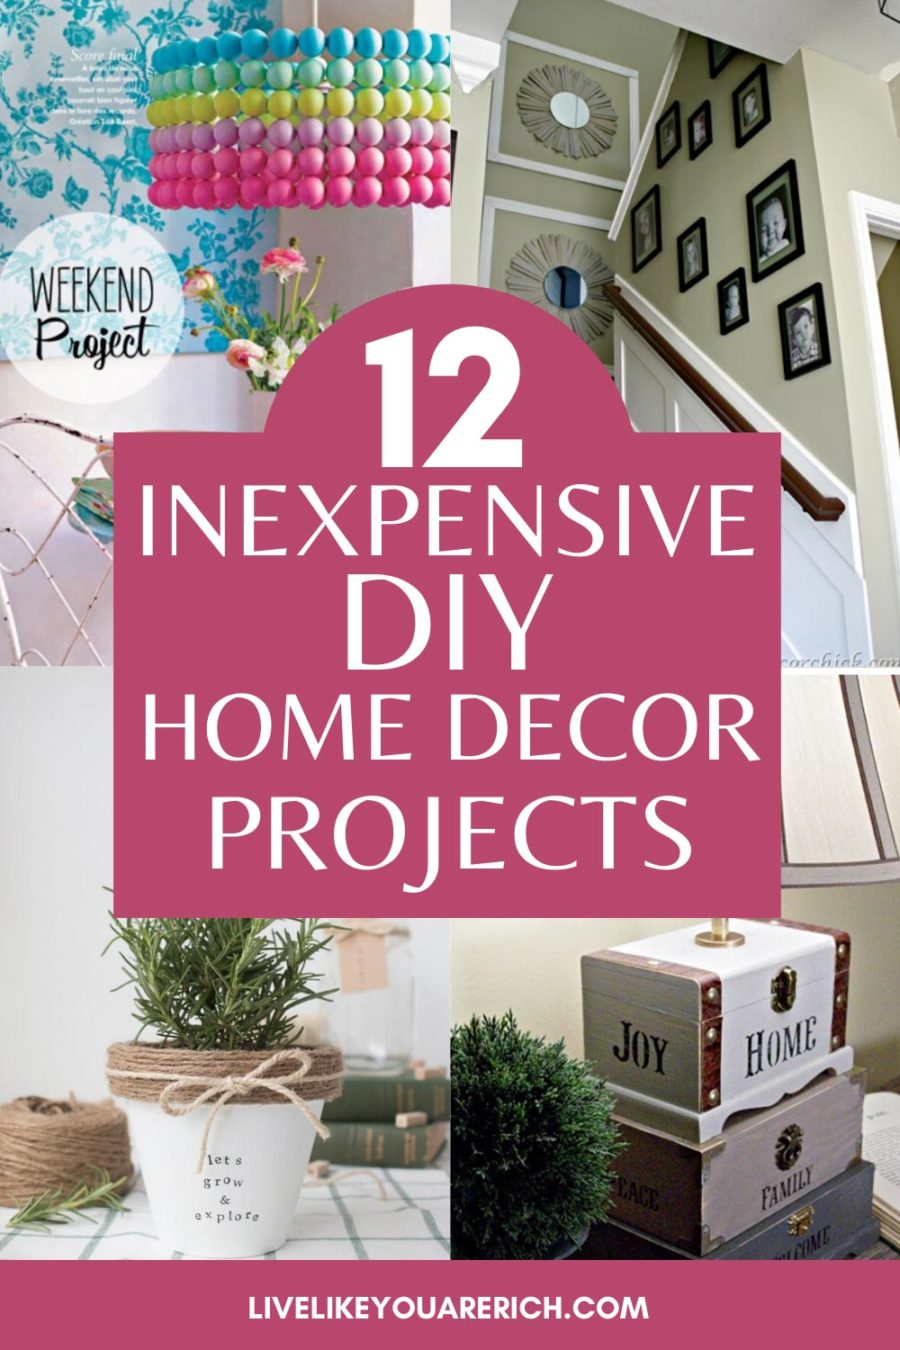 You don't have to spend a fortune decorating your home beautifully. Here is a proof of this! Check out these amazing ideas of how you can create quality home decor items inexpensively. #homedecor #diy #decorating